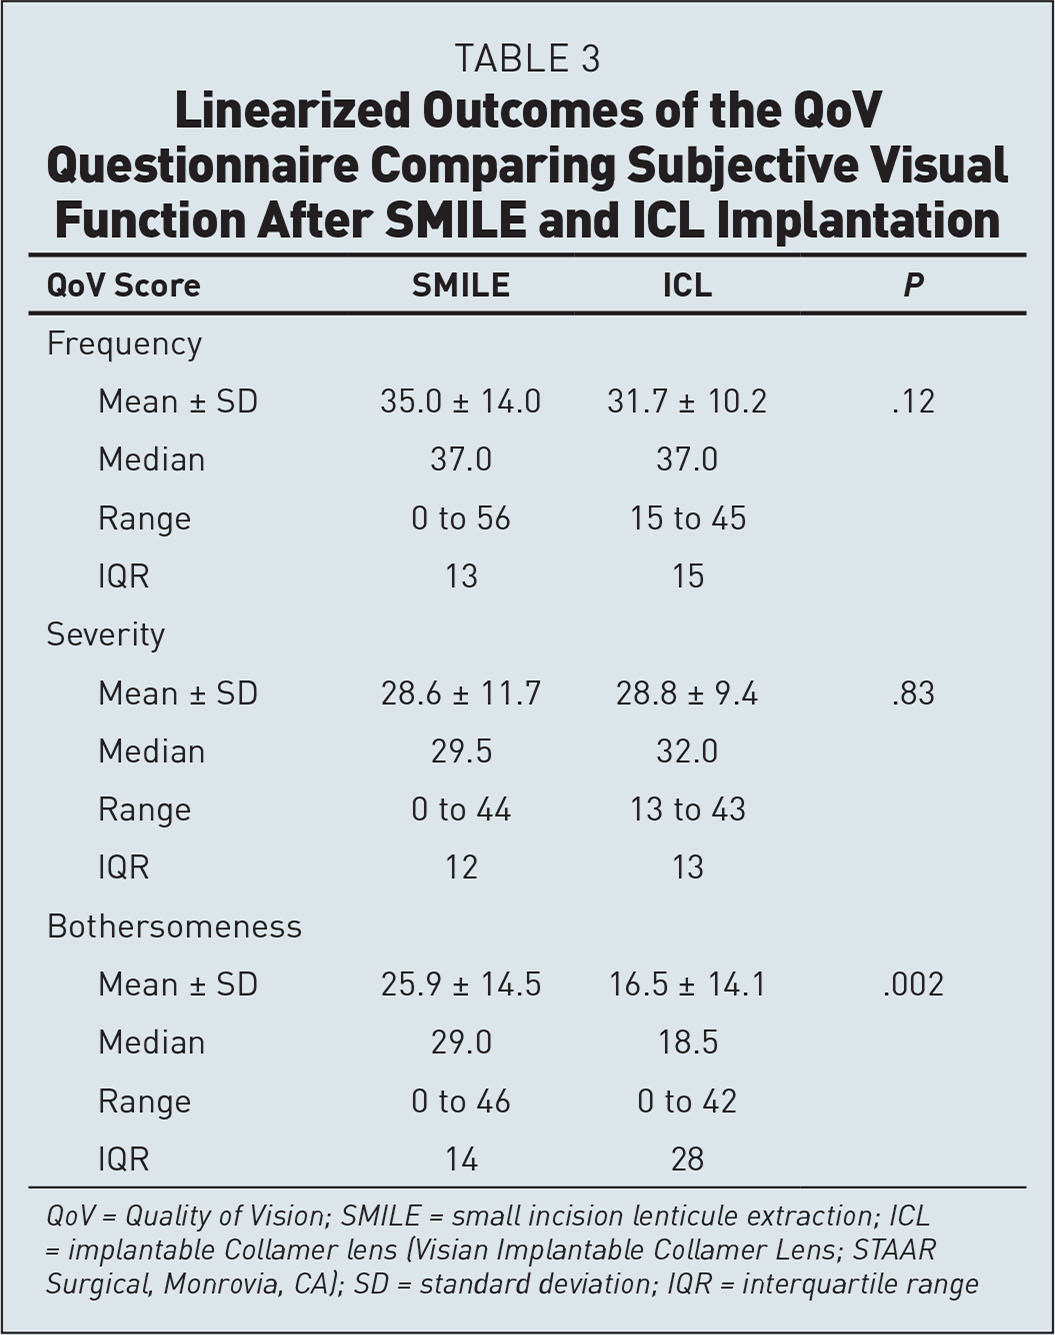 Linearized Outcomes of the QoV Questionnaire Comparing Subjective Visual Function After SMILE and ICL Implantation